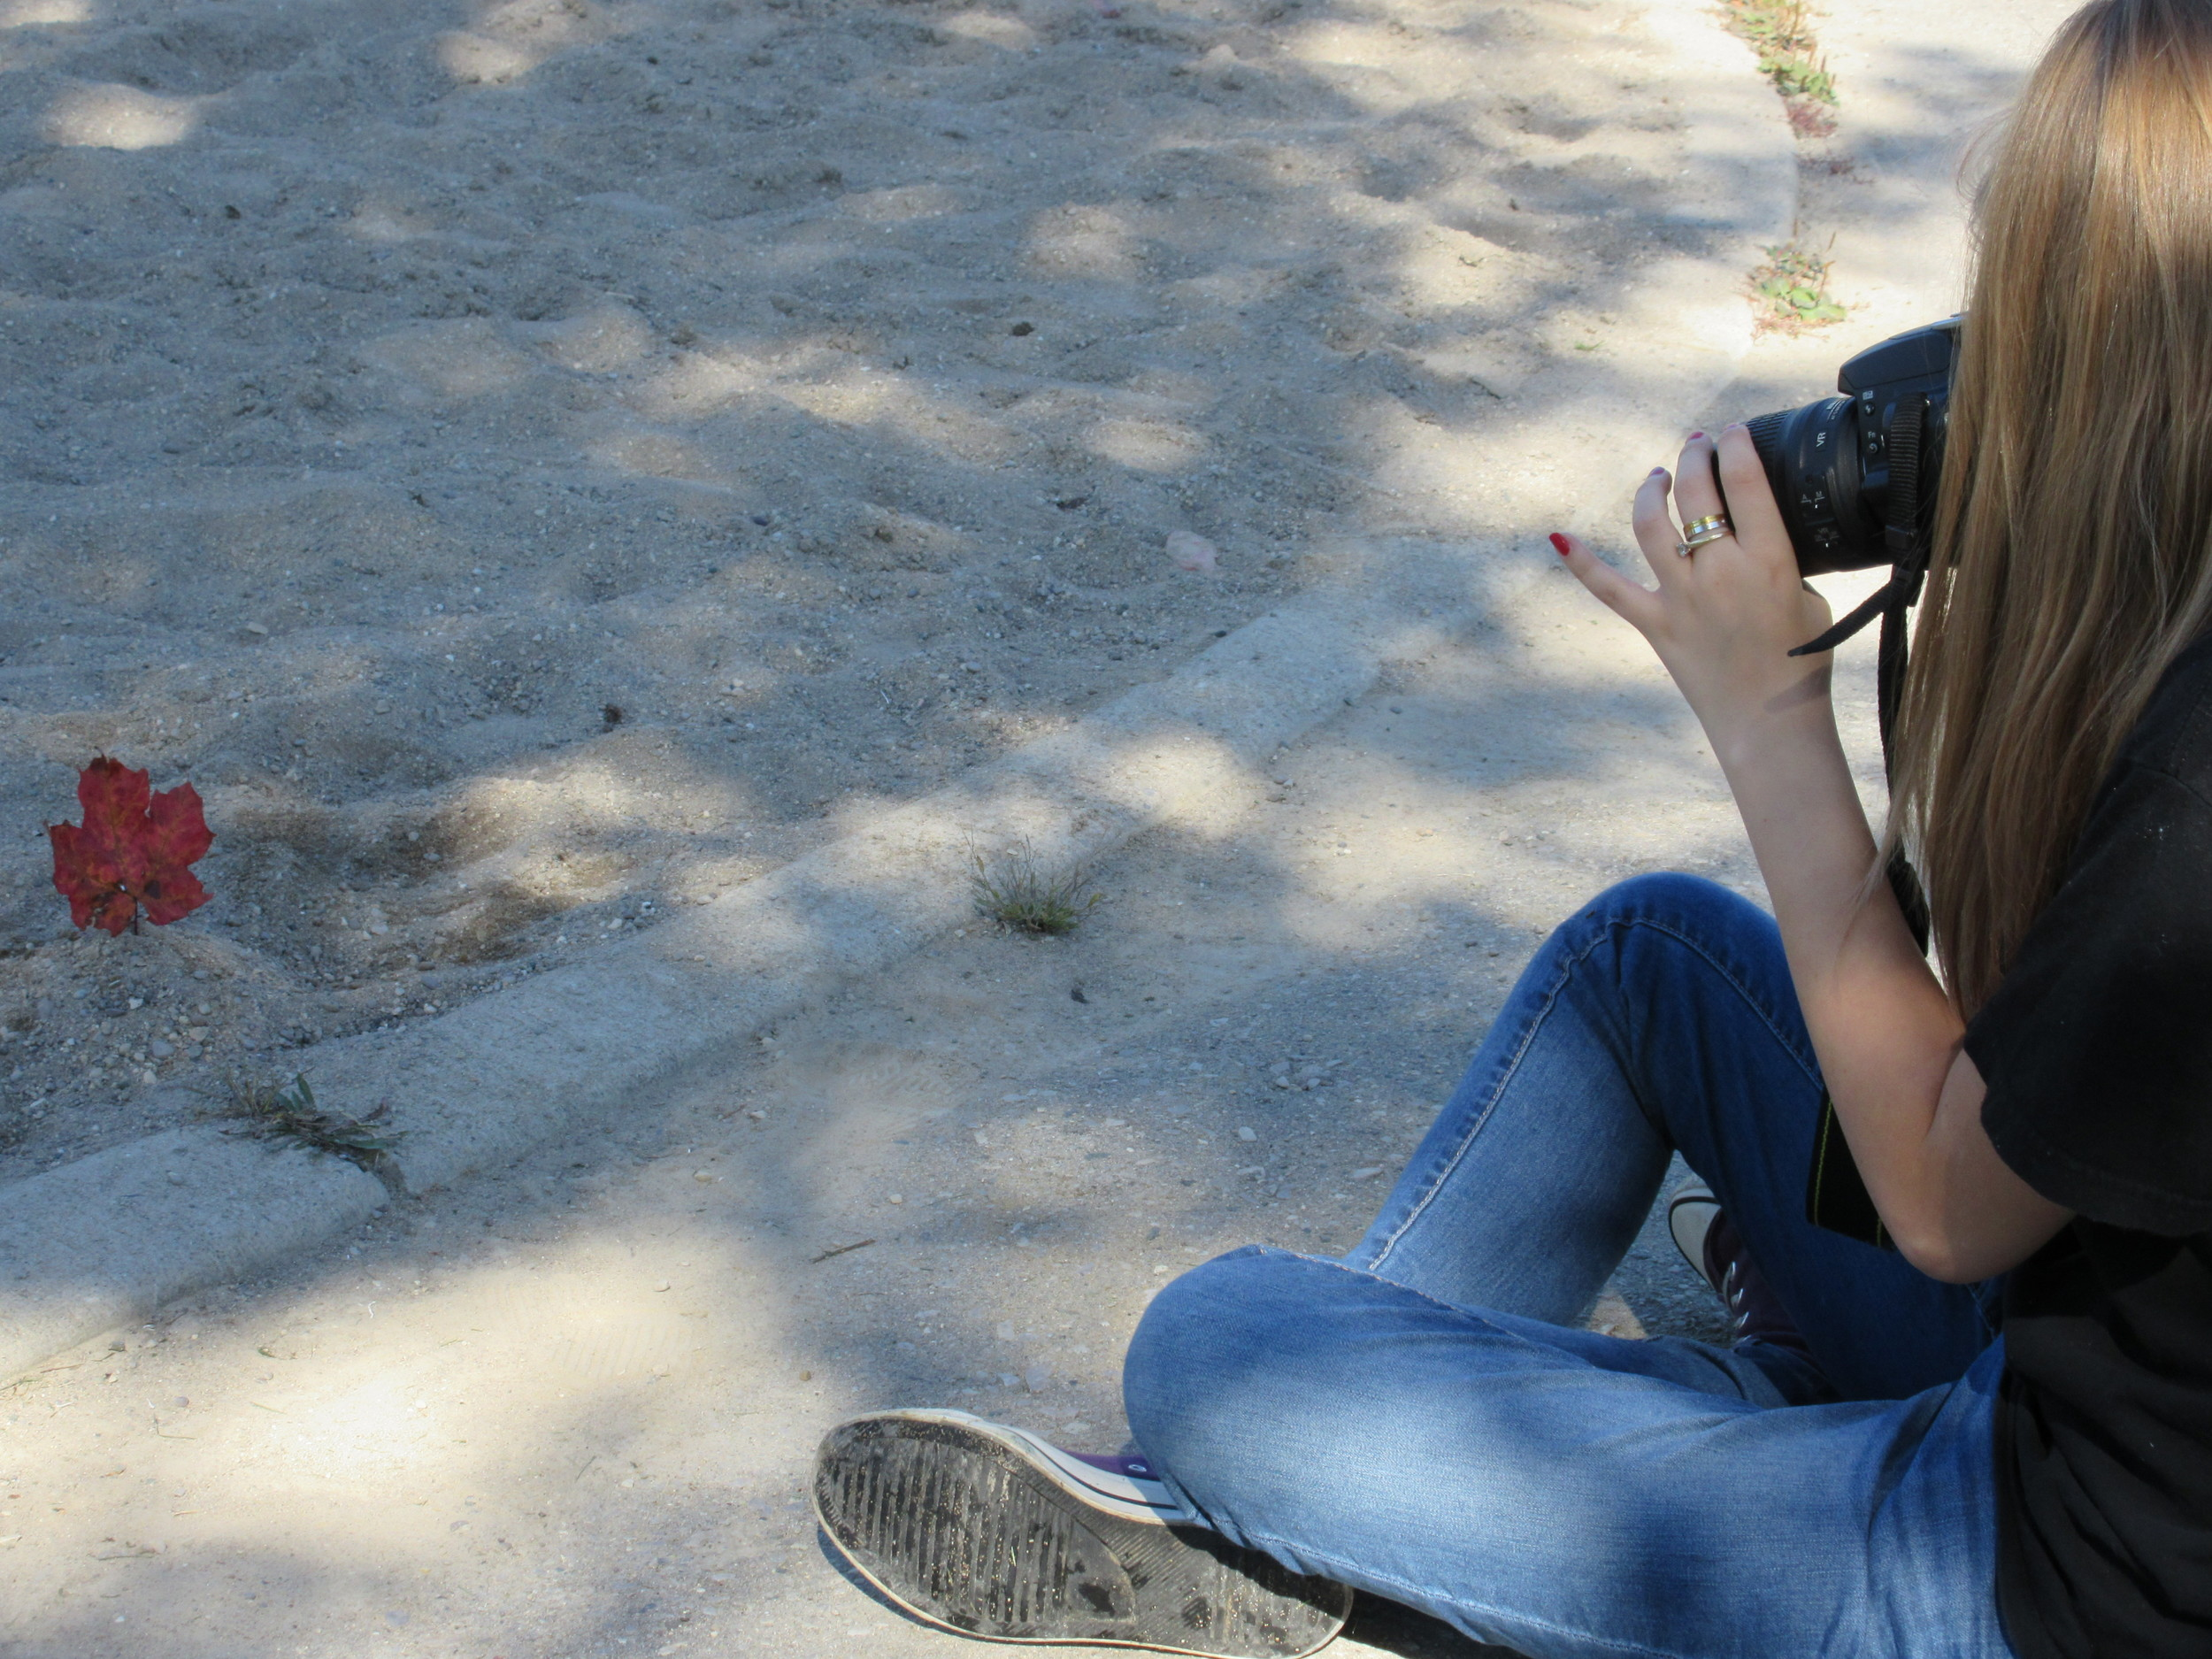 Jessica and her friend love photography.